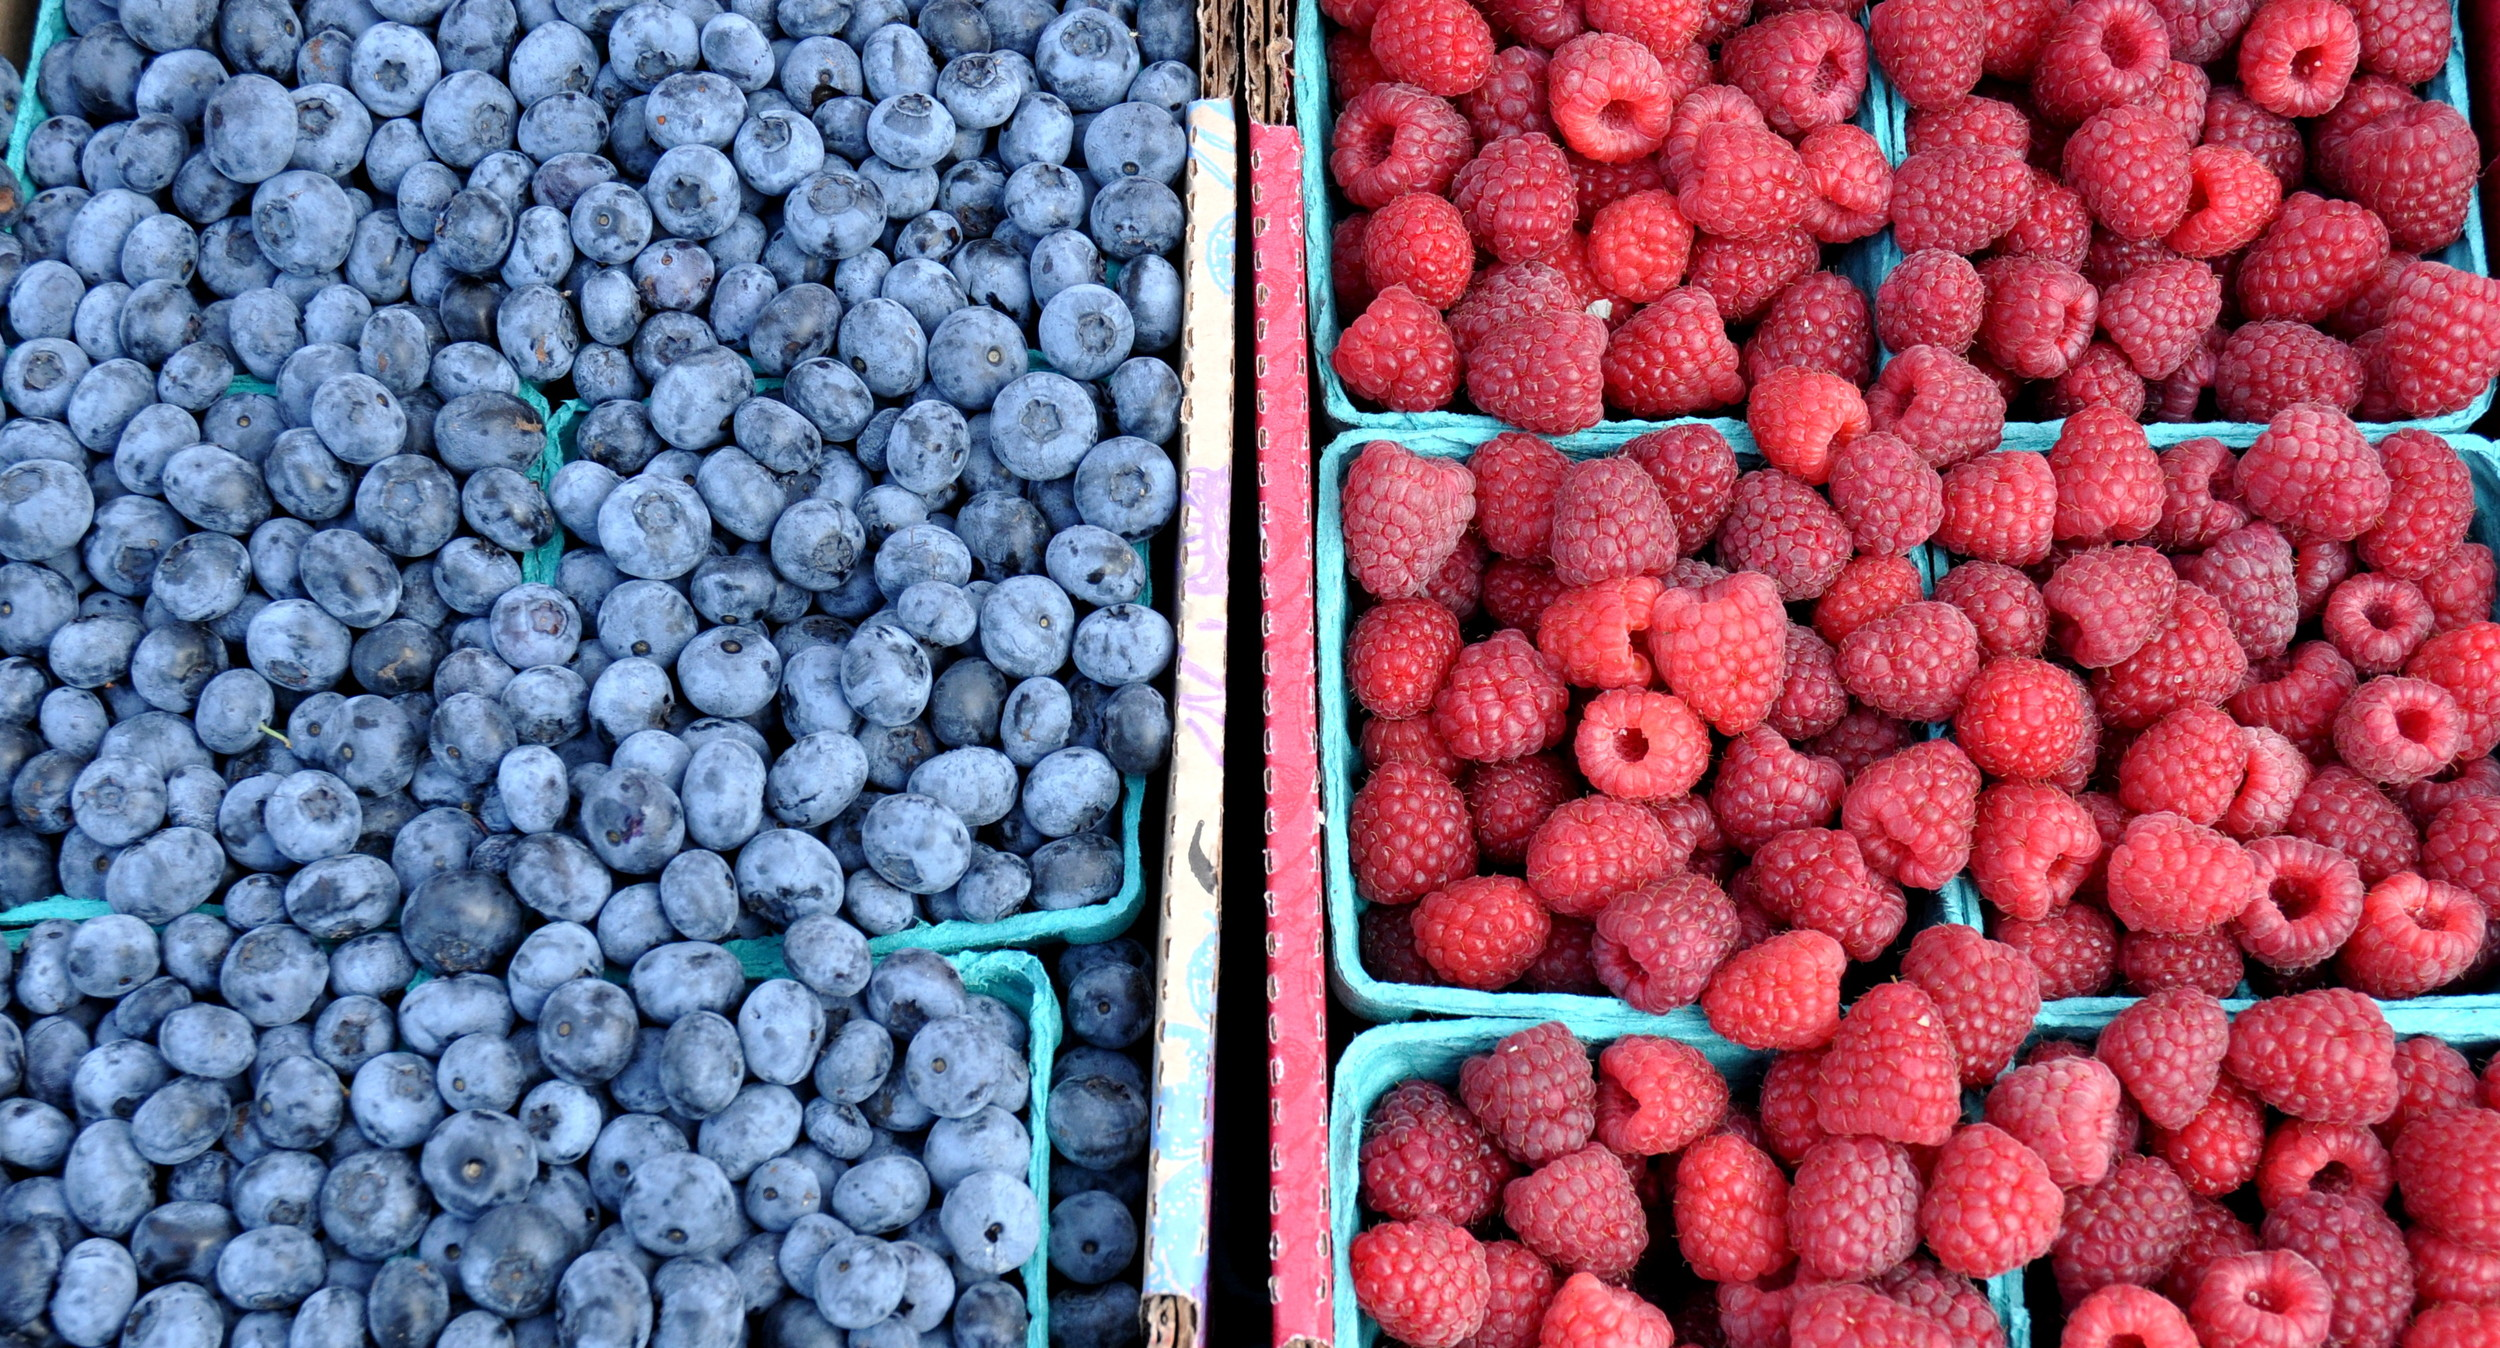 Blueberries and blackberries from Hayton Farms at Wallingford Farmers Market. Copyright Zachary D. Lyons.